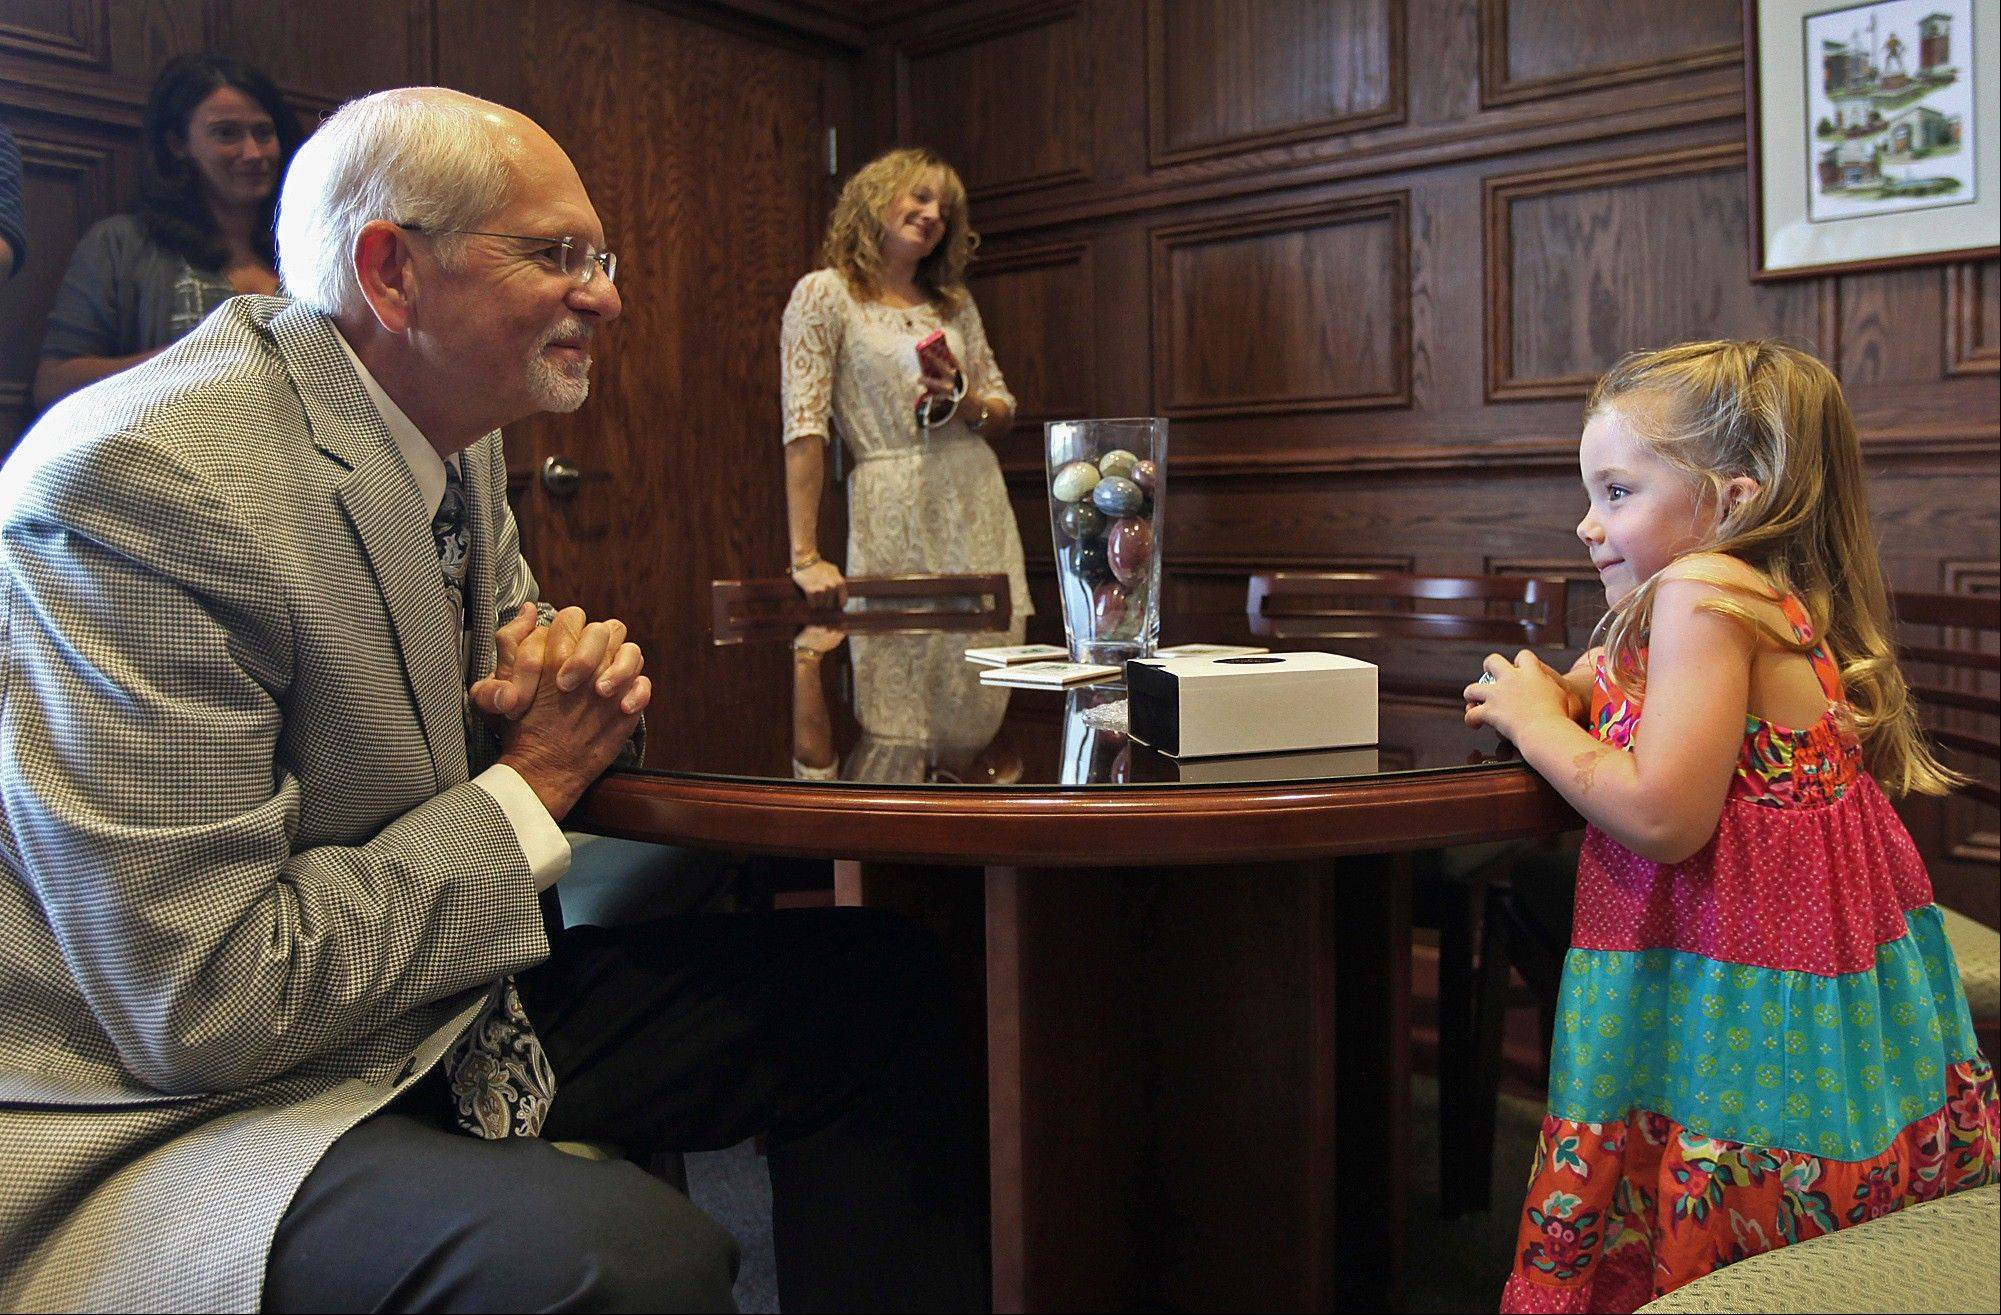 Associated Press John Wood Community College President John Letts, left, visits with 4-year-old Alexa Mosley in his office at the college in Quincy. Alexa recently told her parents that she wanted to visit big colleges to decide where to go to school in the future, so Letts and staff scheduled the campus tour.